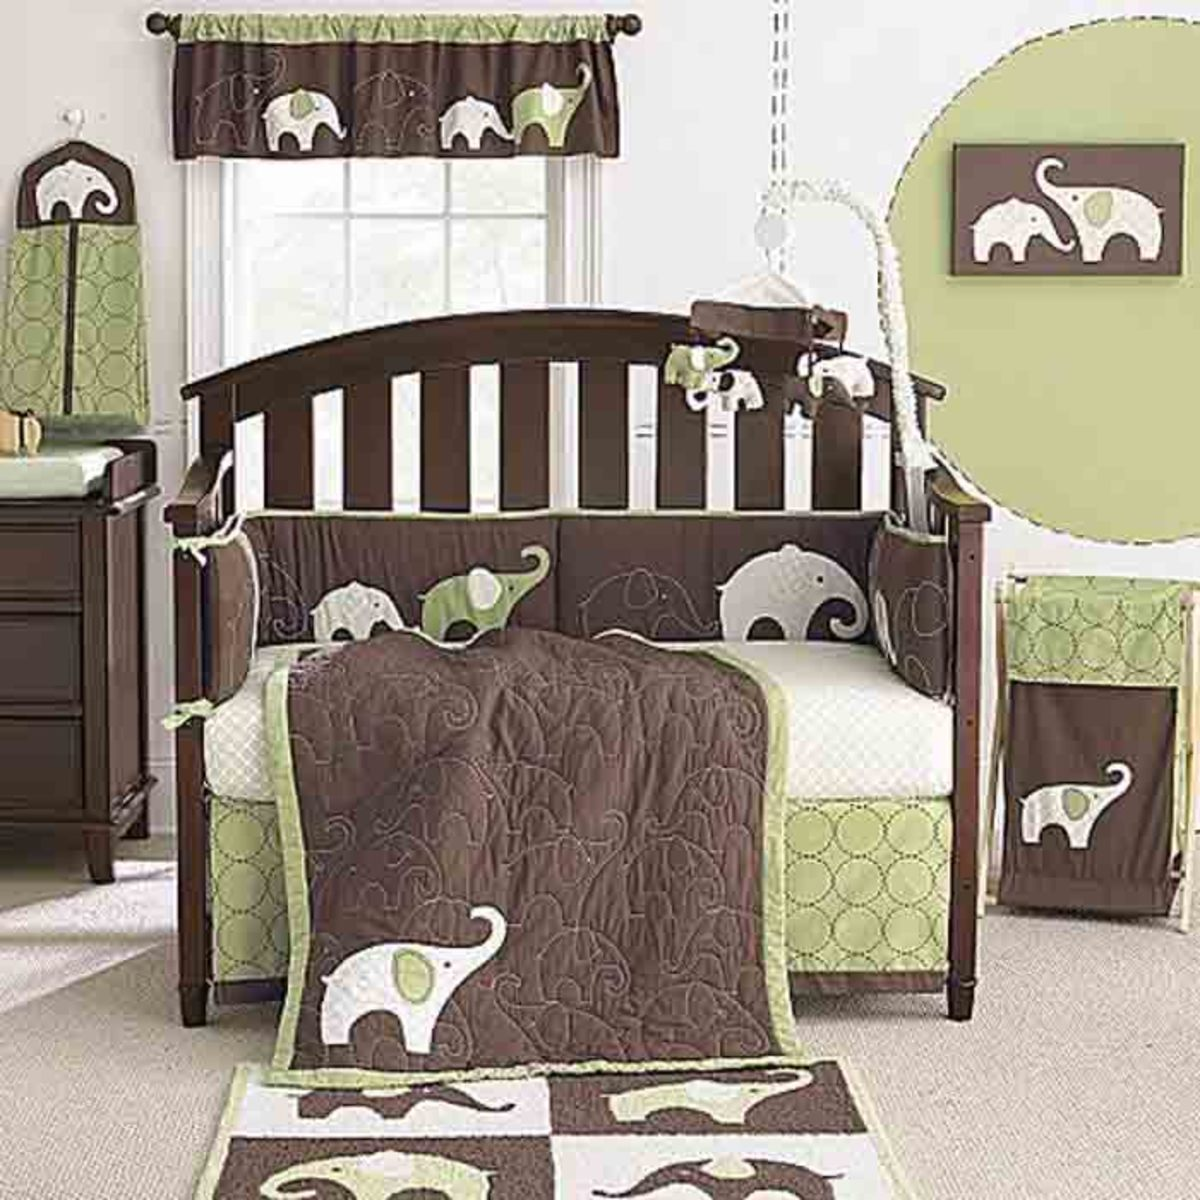 Decorating ideas for a baby boy nursery - Baby rooms idees ...